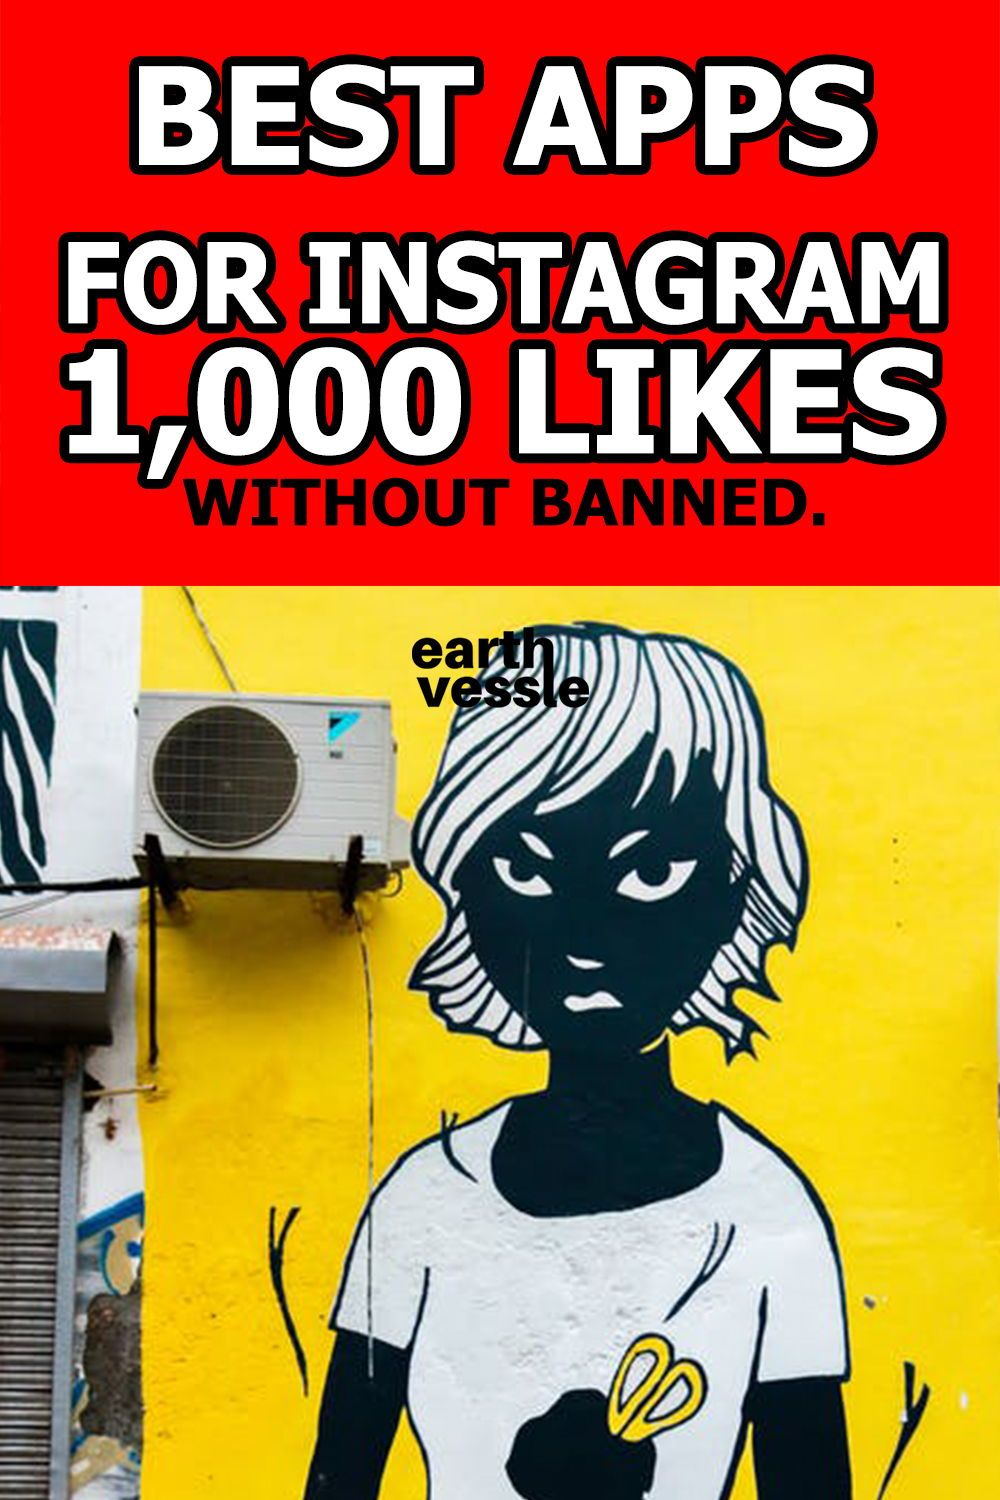 Best app for instagram likes get 1000 likes without